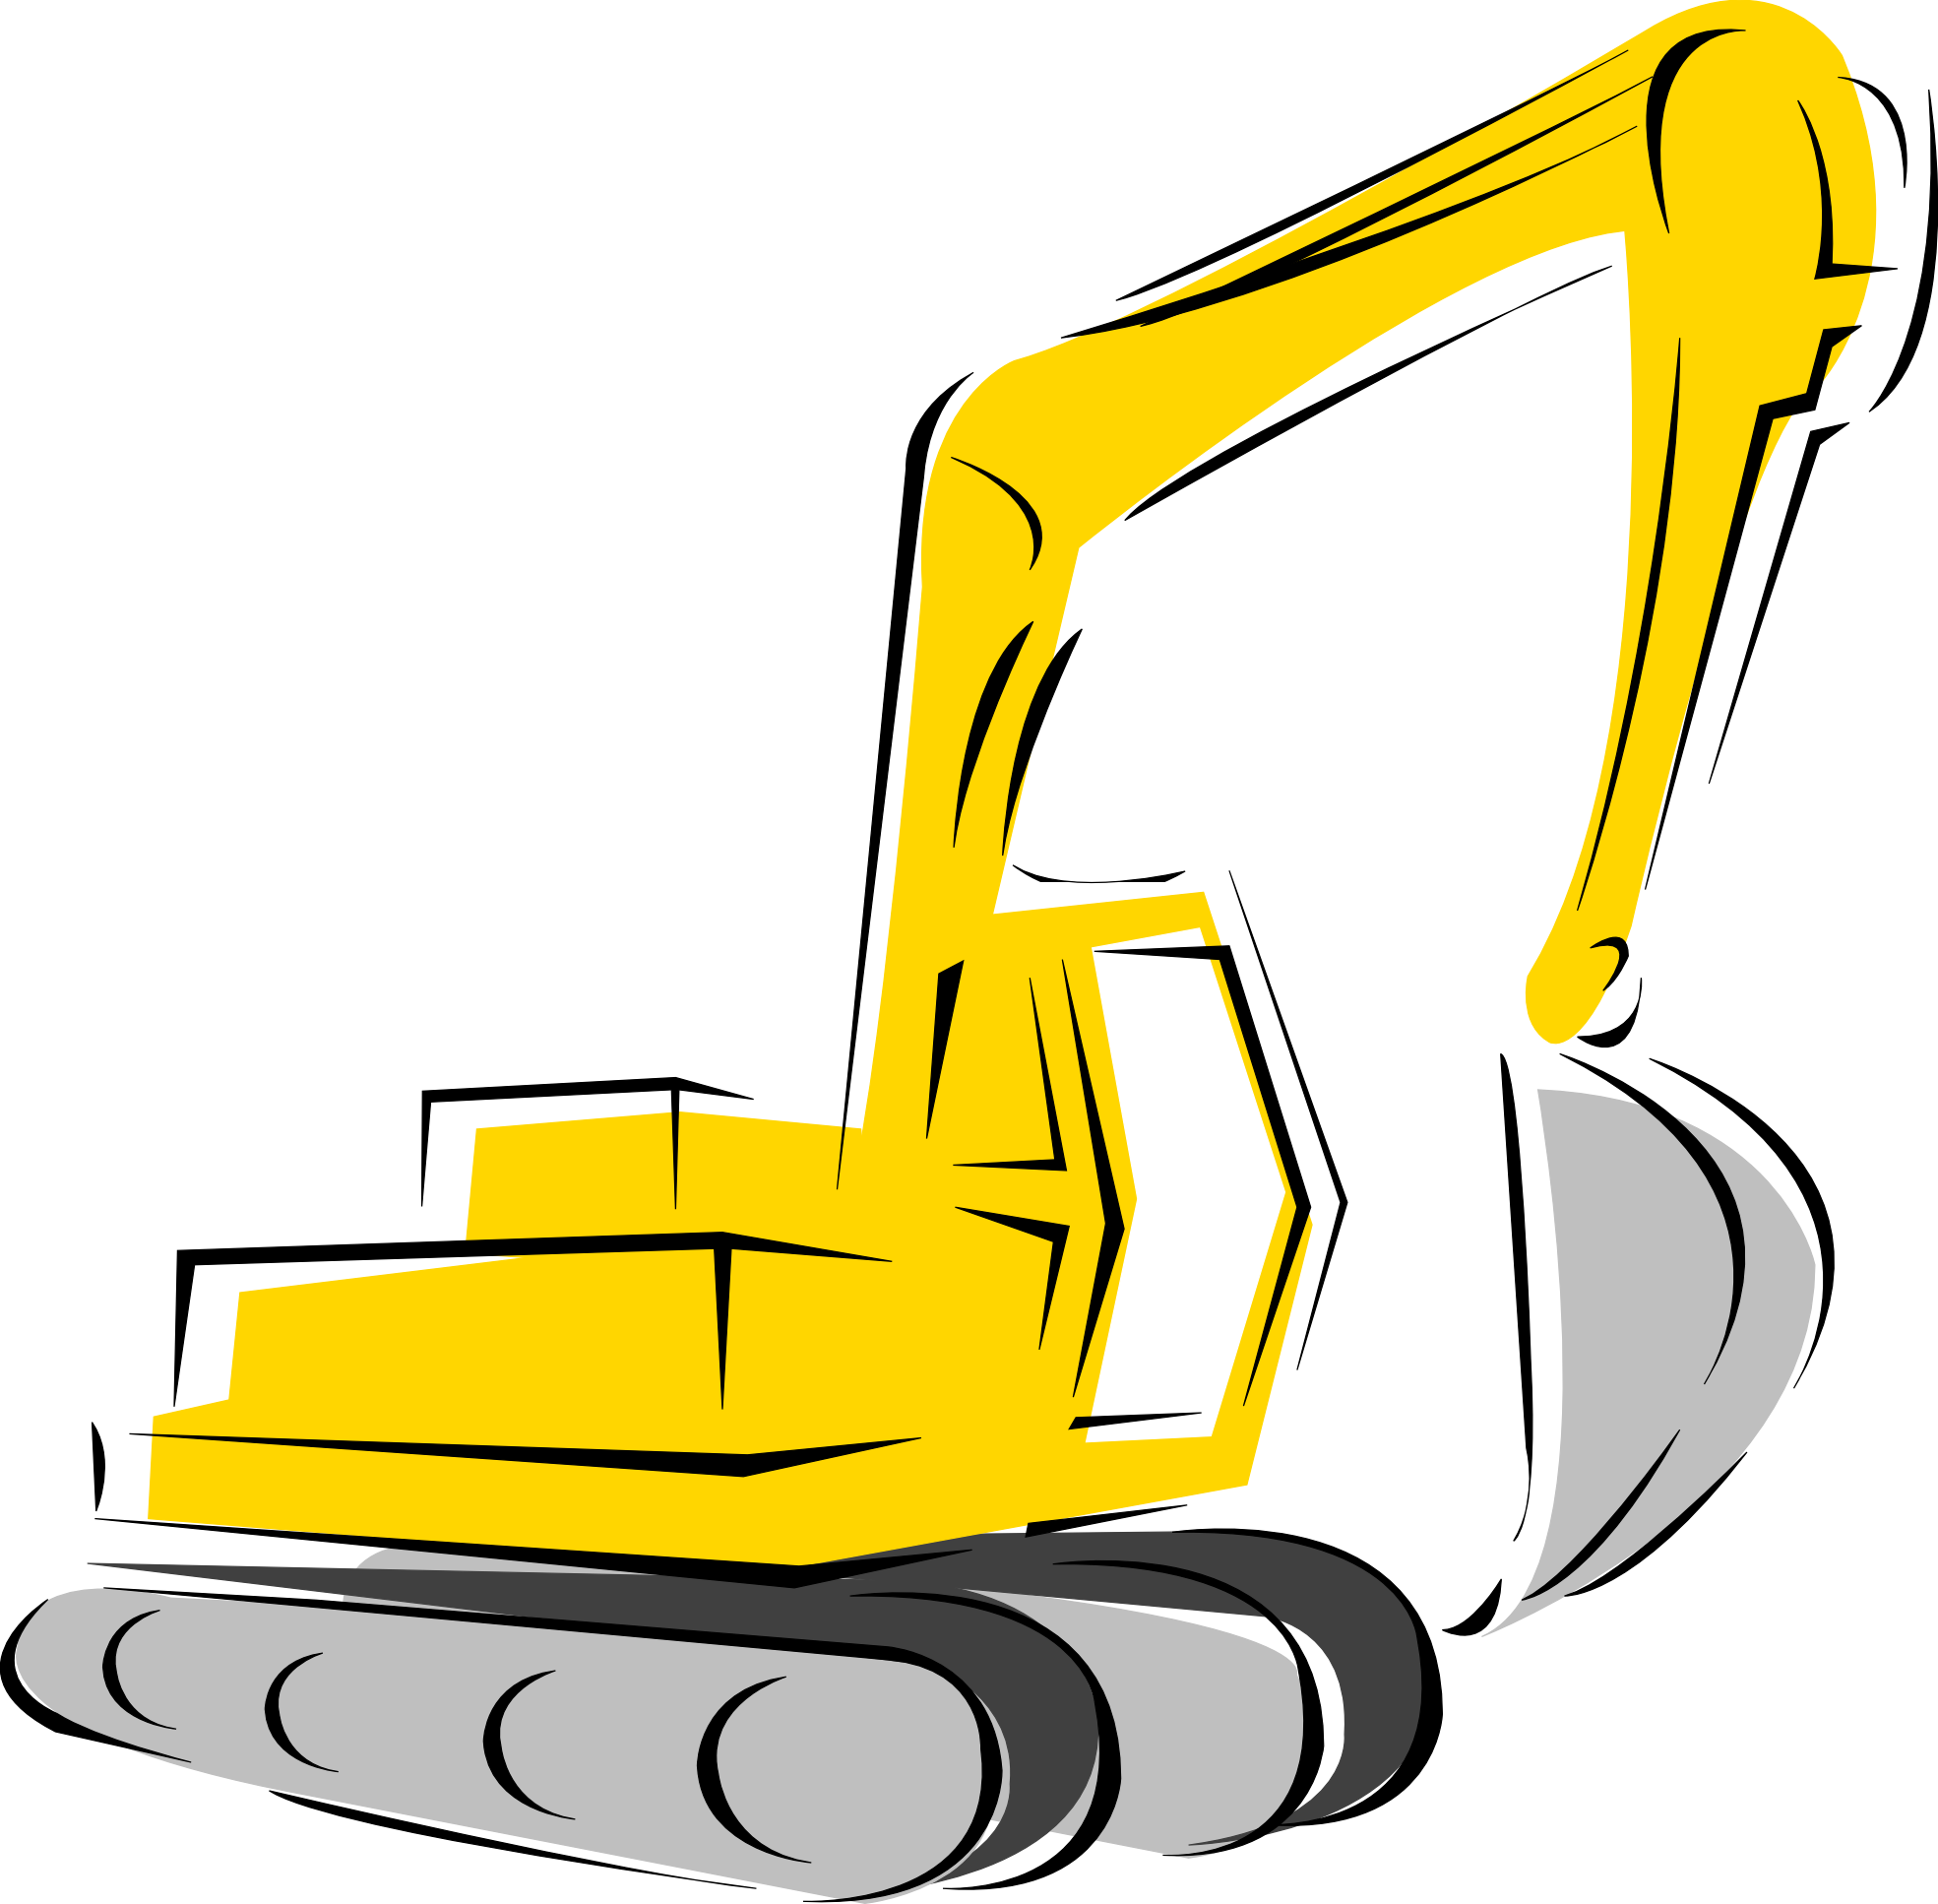 1969x1934 Construction Equipment Clipart Collection